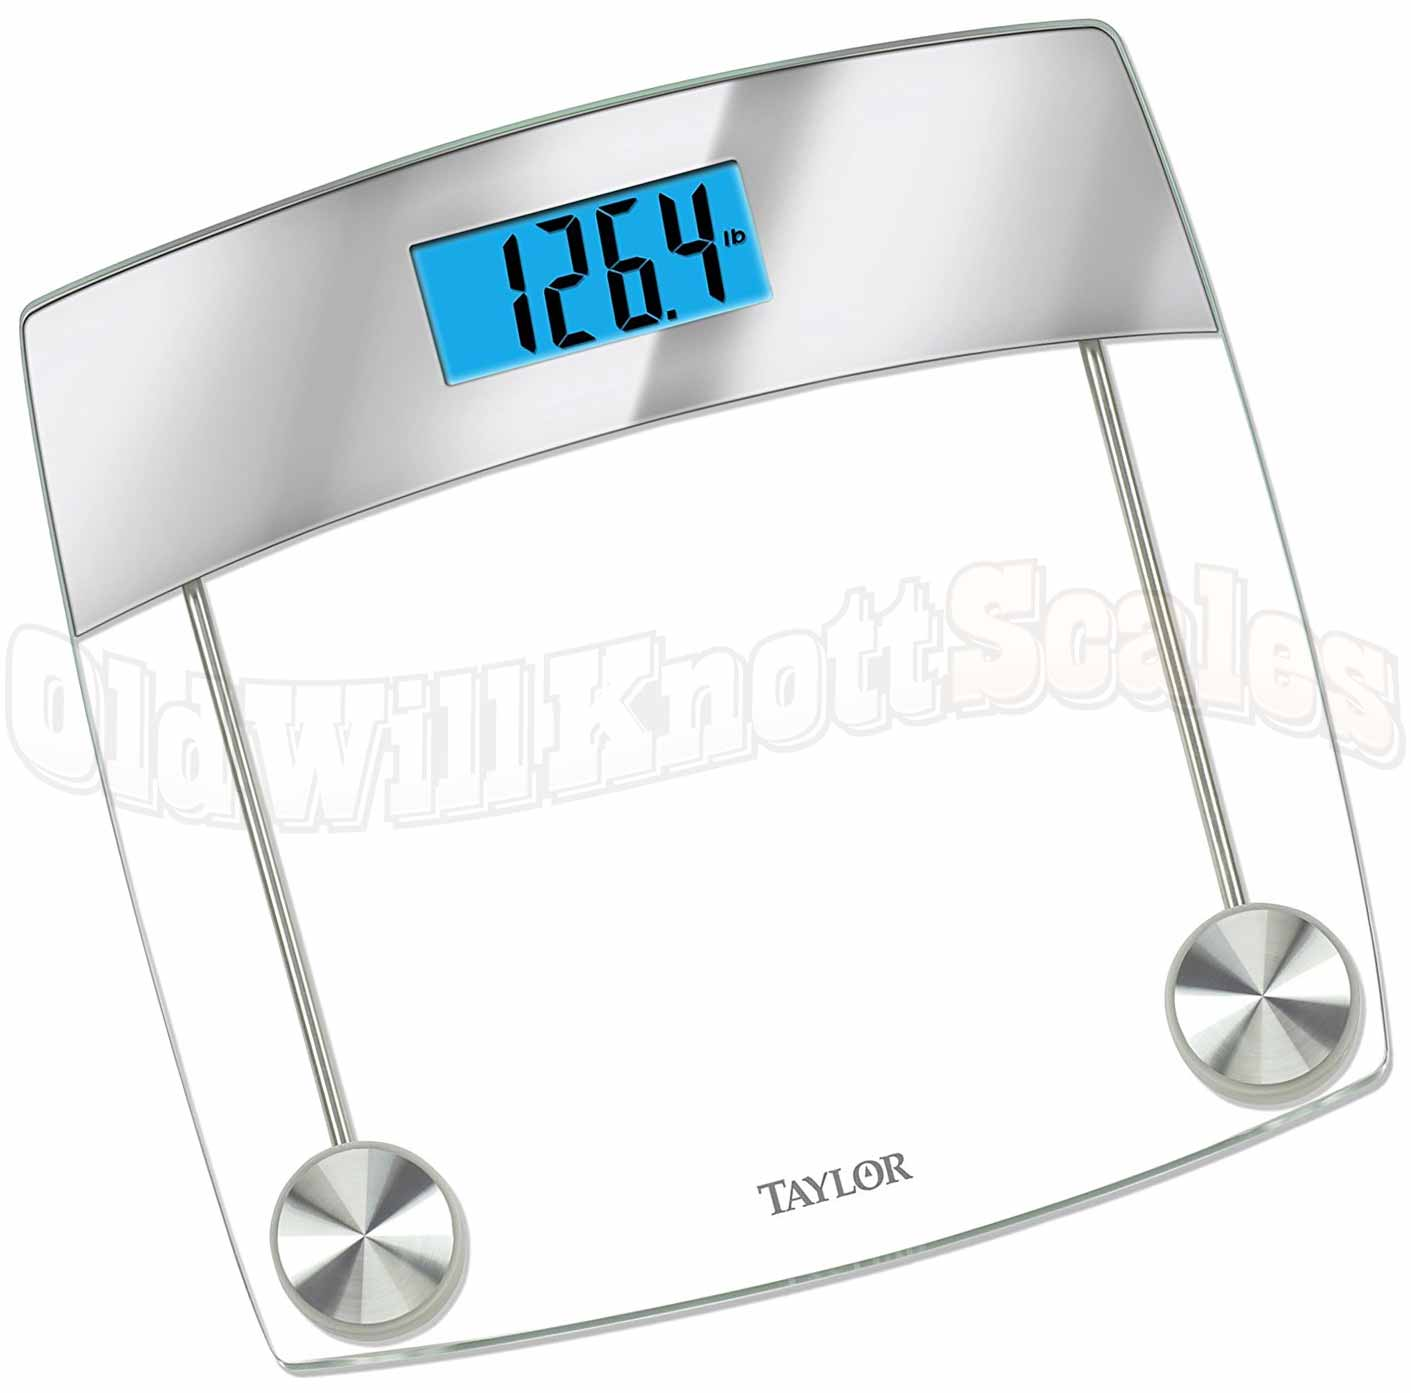 Calibrate digital bathroom scale - Taylor 7524 Digital Bathroom Scale With Glass Platform And Mirror Accent